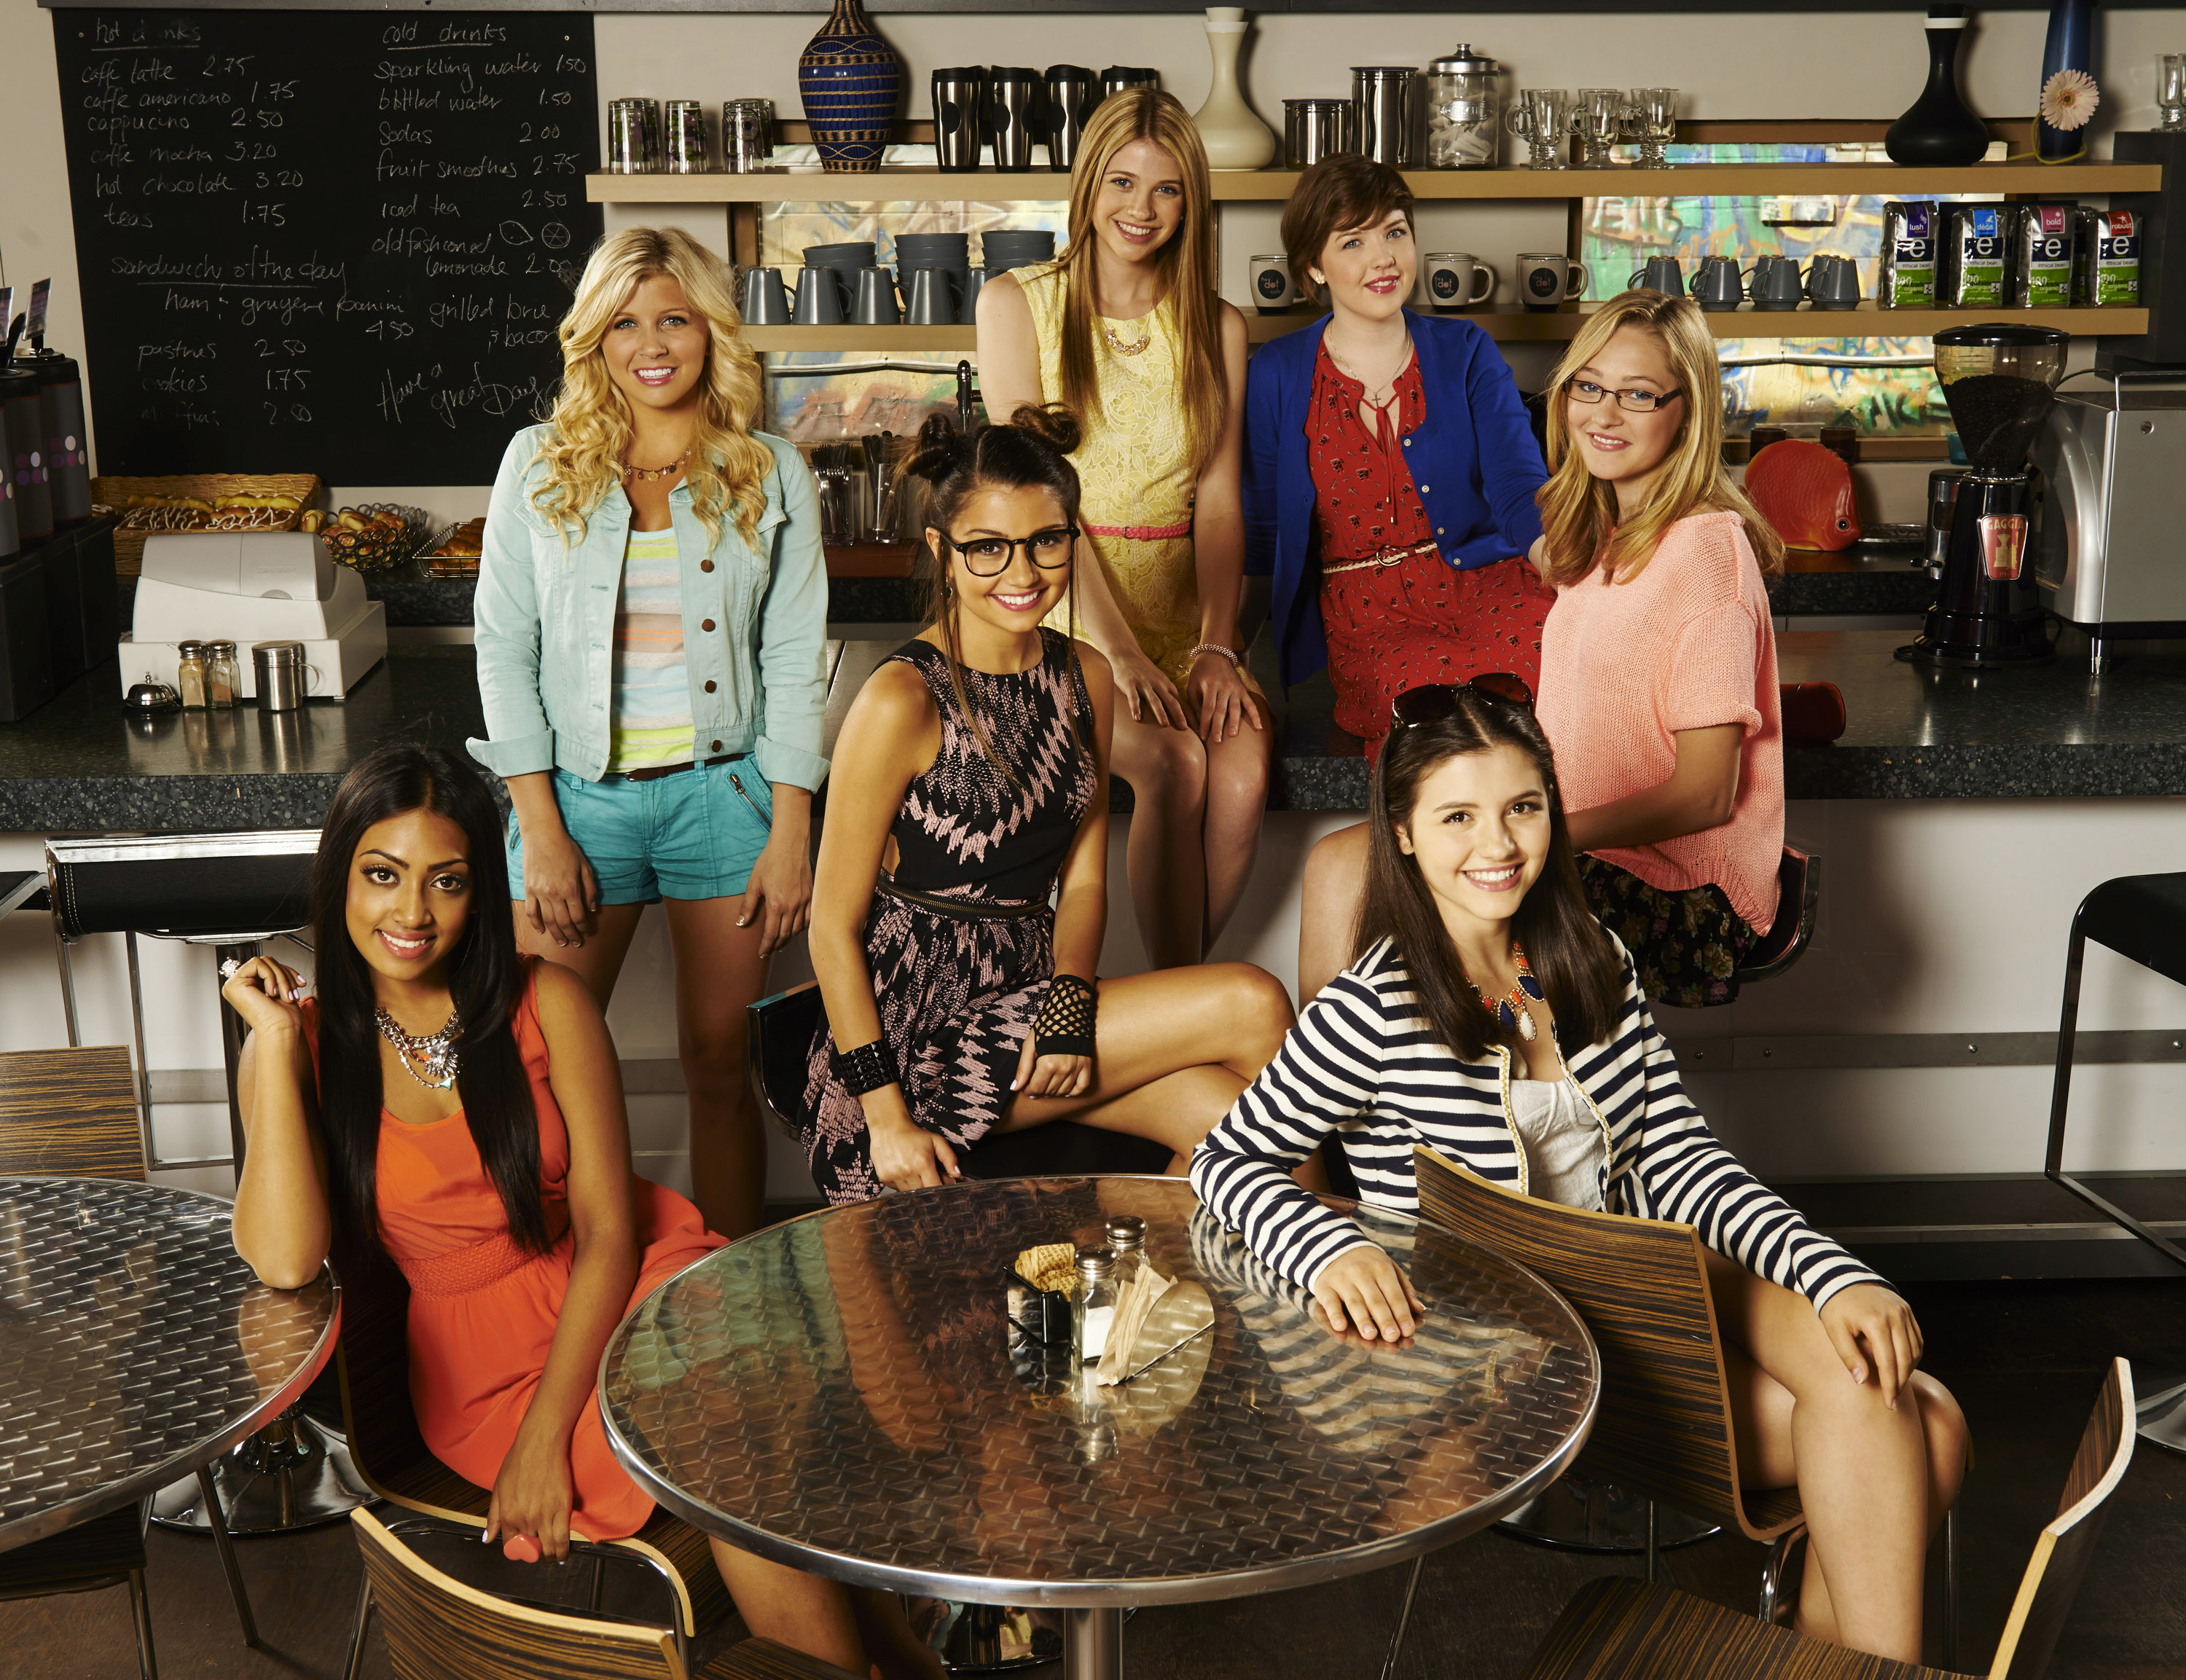 Pics of the degrassi girls — photo 12